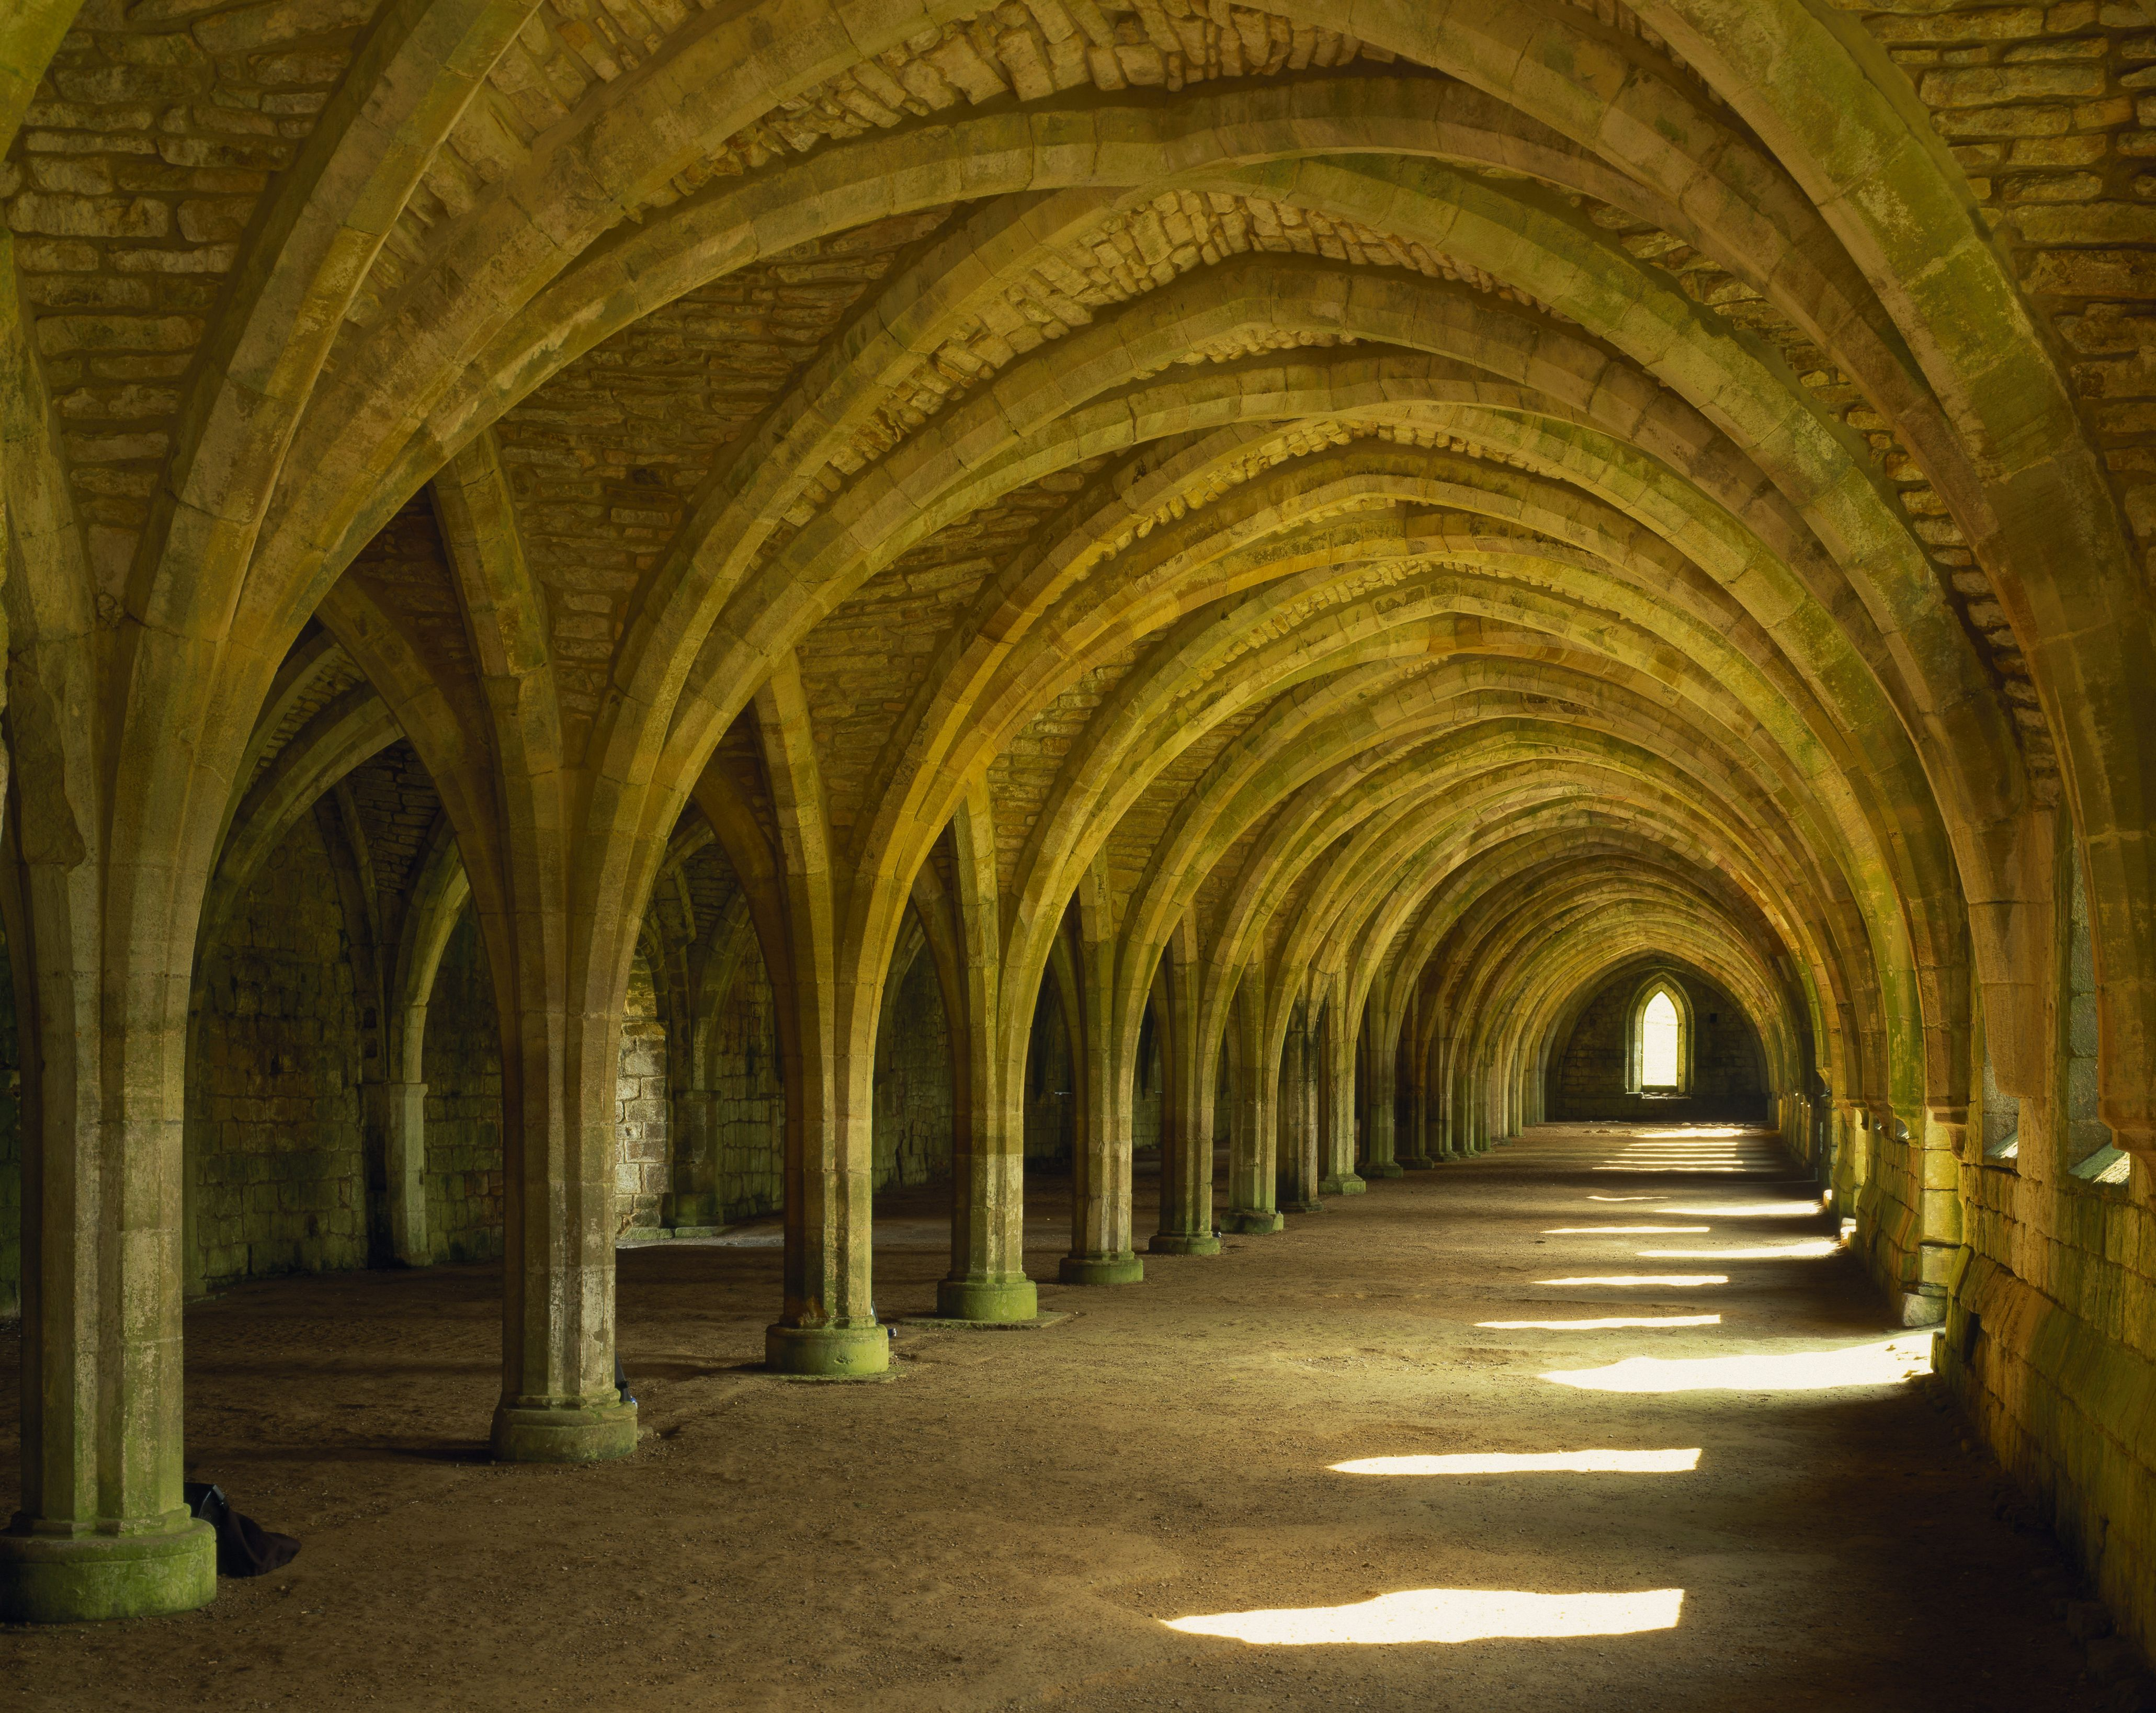 The magnificent West Range of the Cloisters at Fountains Abbey, North Yorkshire, containing the cellarium and lay brothers' refectory.